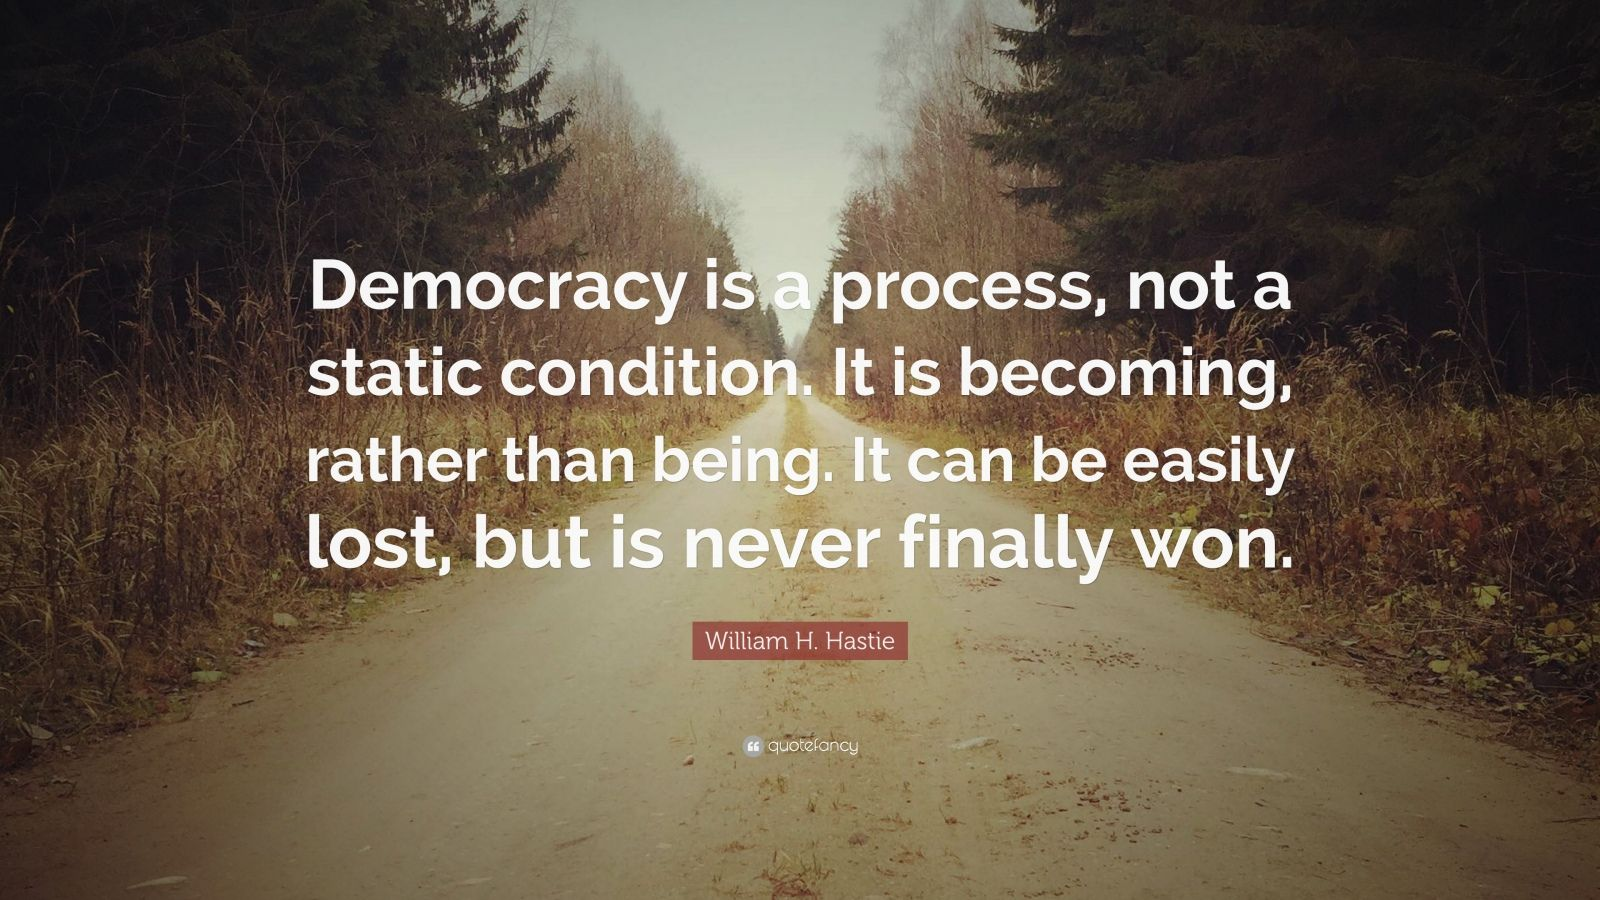 """William H. Hastie Quote: """"Democracy is a process, not a static condition. It is becoming, rather than being. It can be easily lost, but is never finally won."""""""